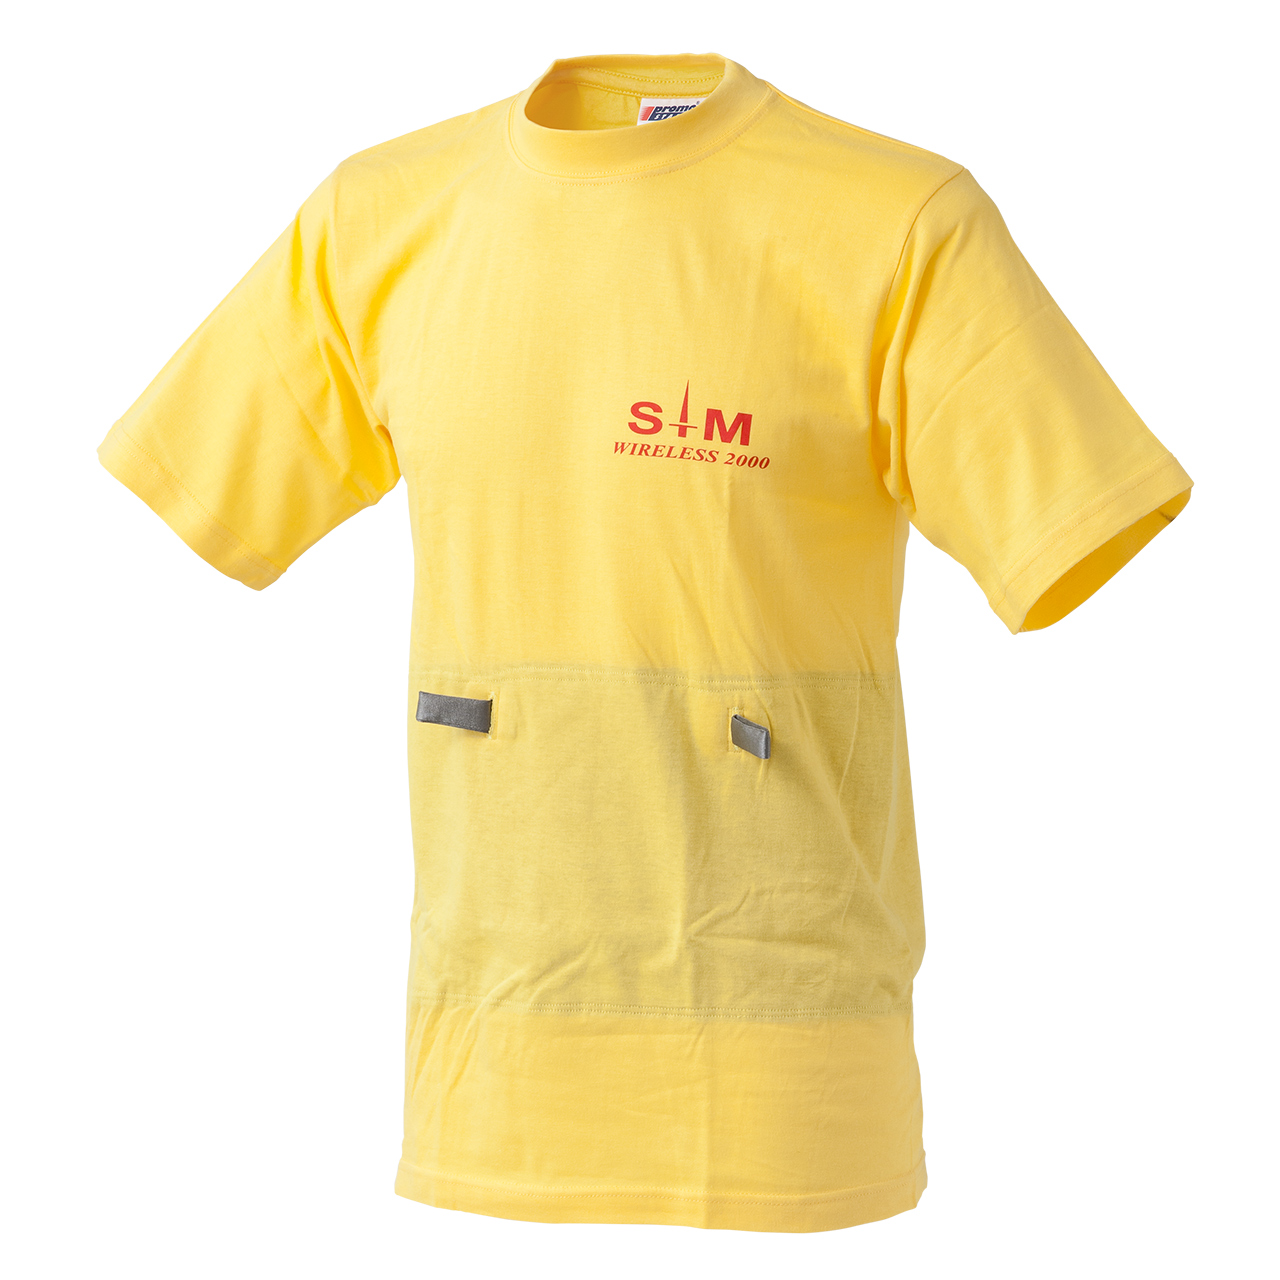 conductive T-Shirt for sabre